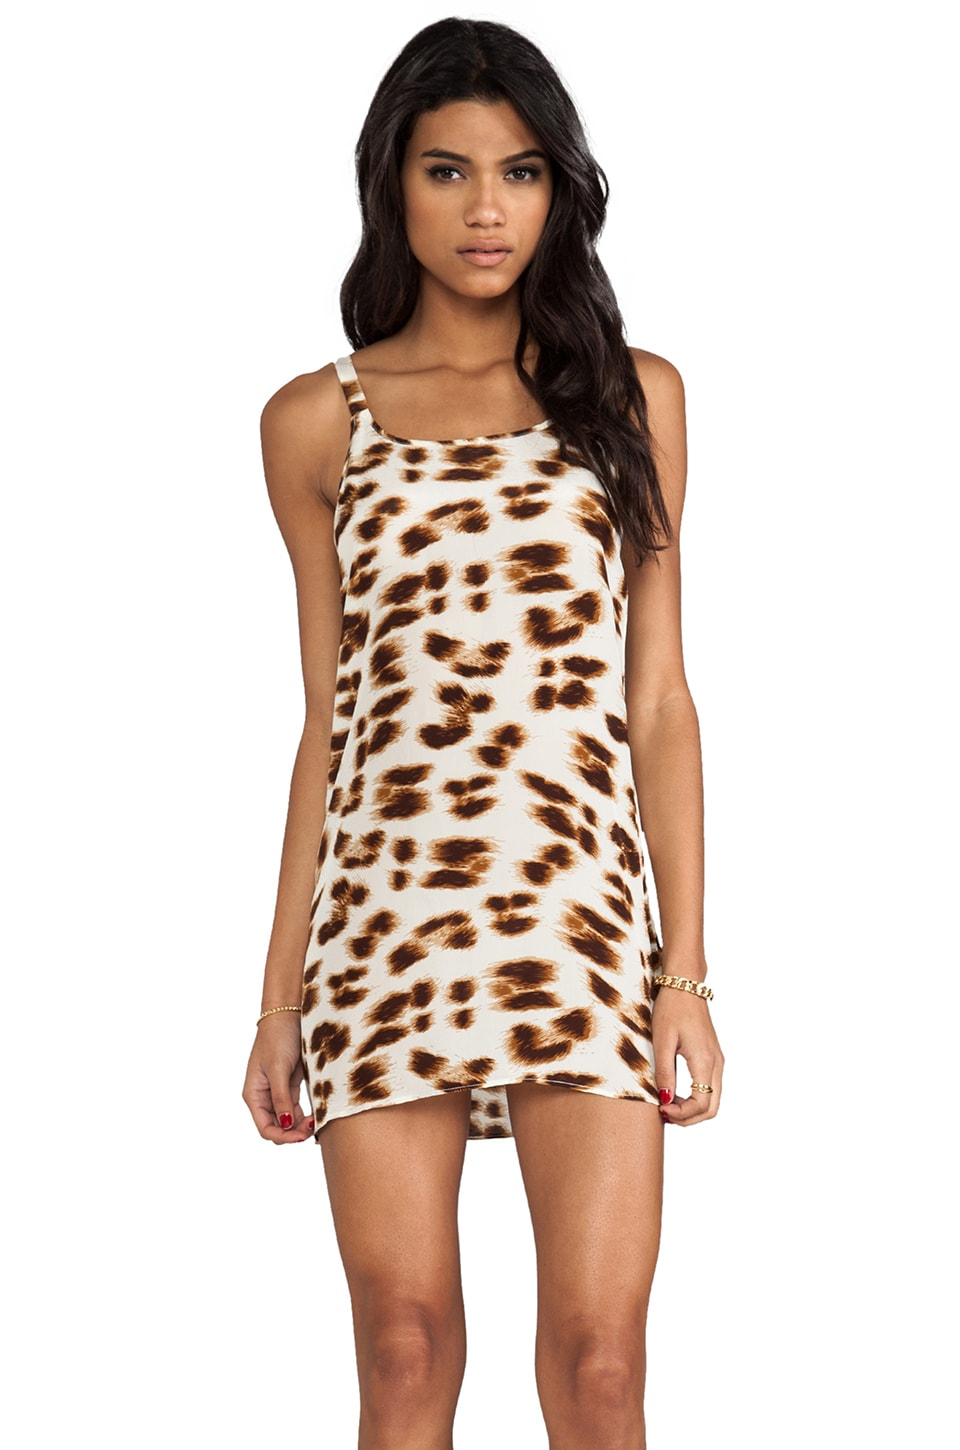 Friend of Mine Drifter Animal Print Dress in Leopard